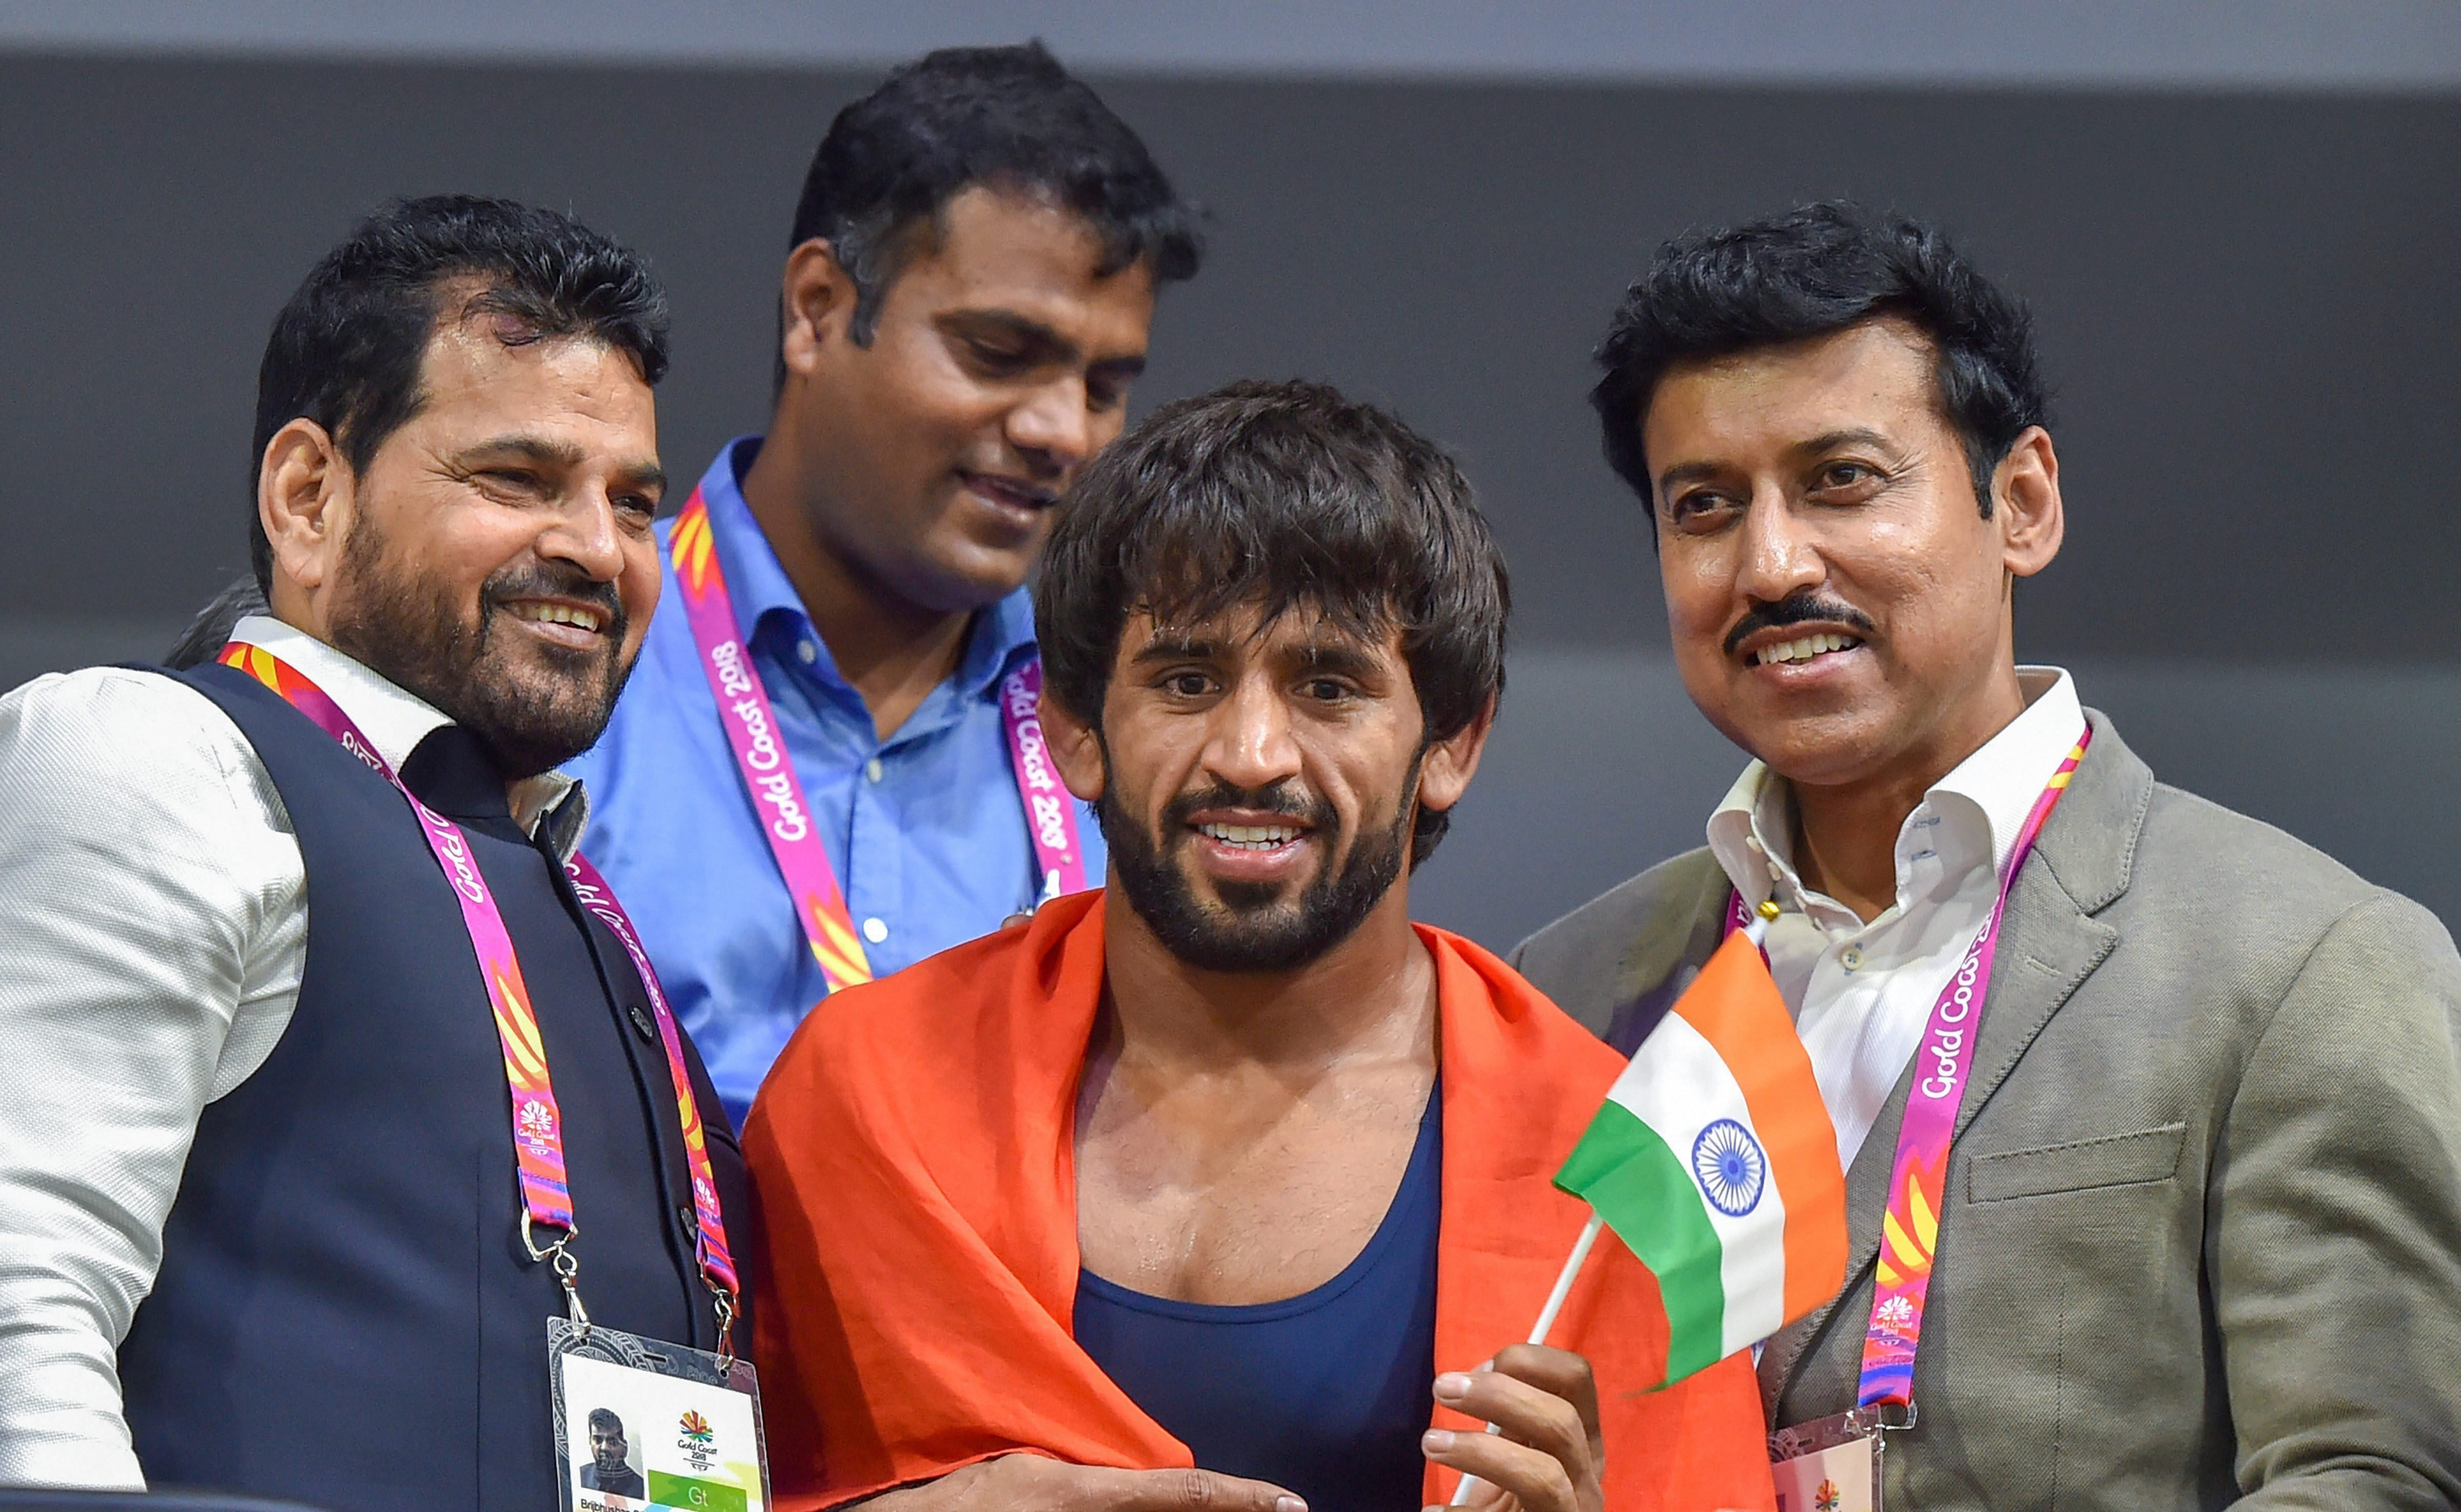 Bajrang put up a solid show too.